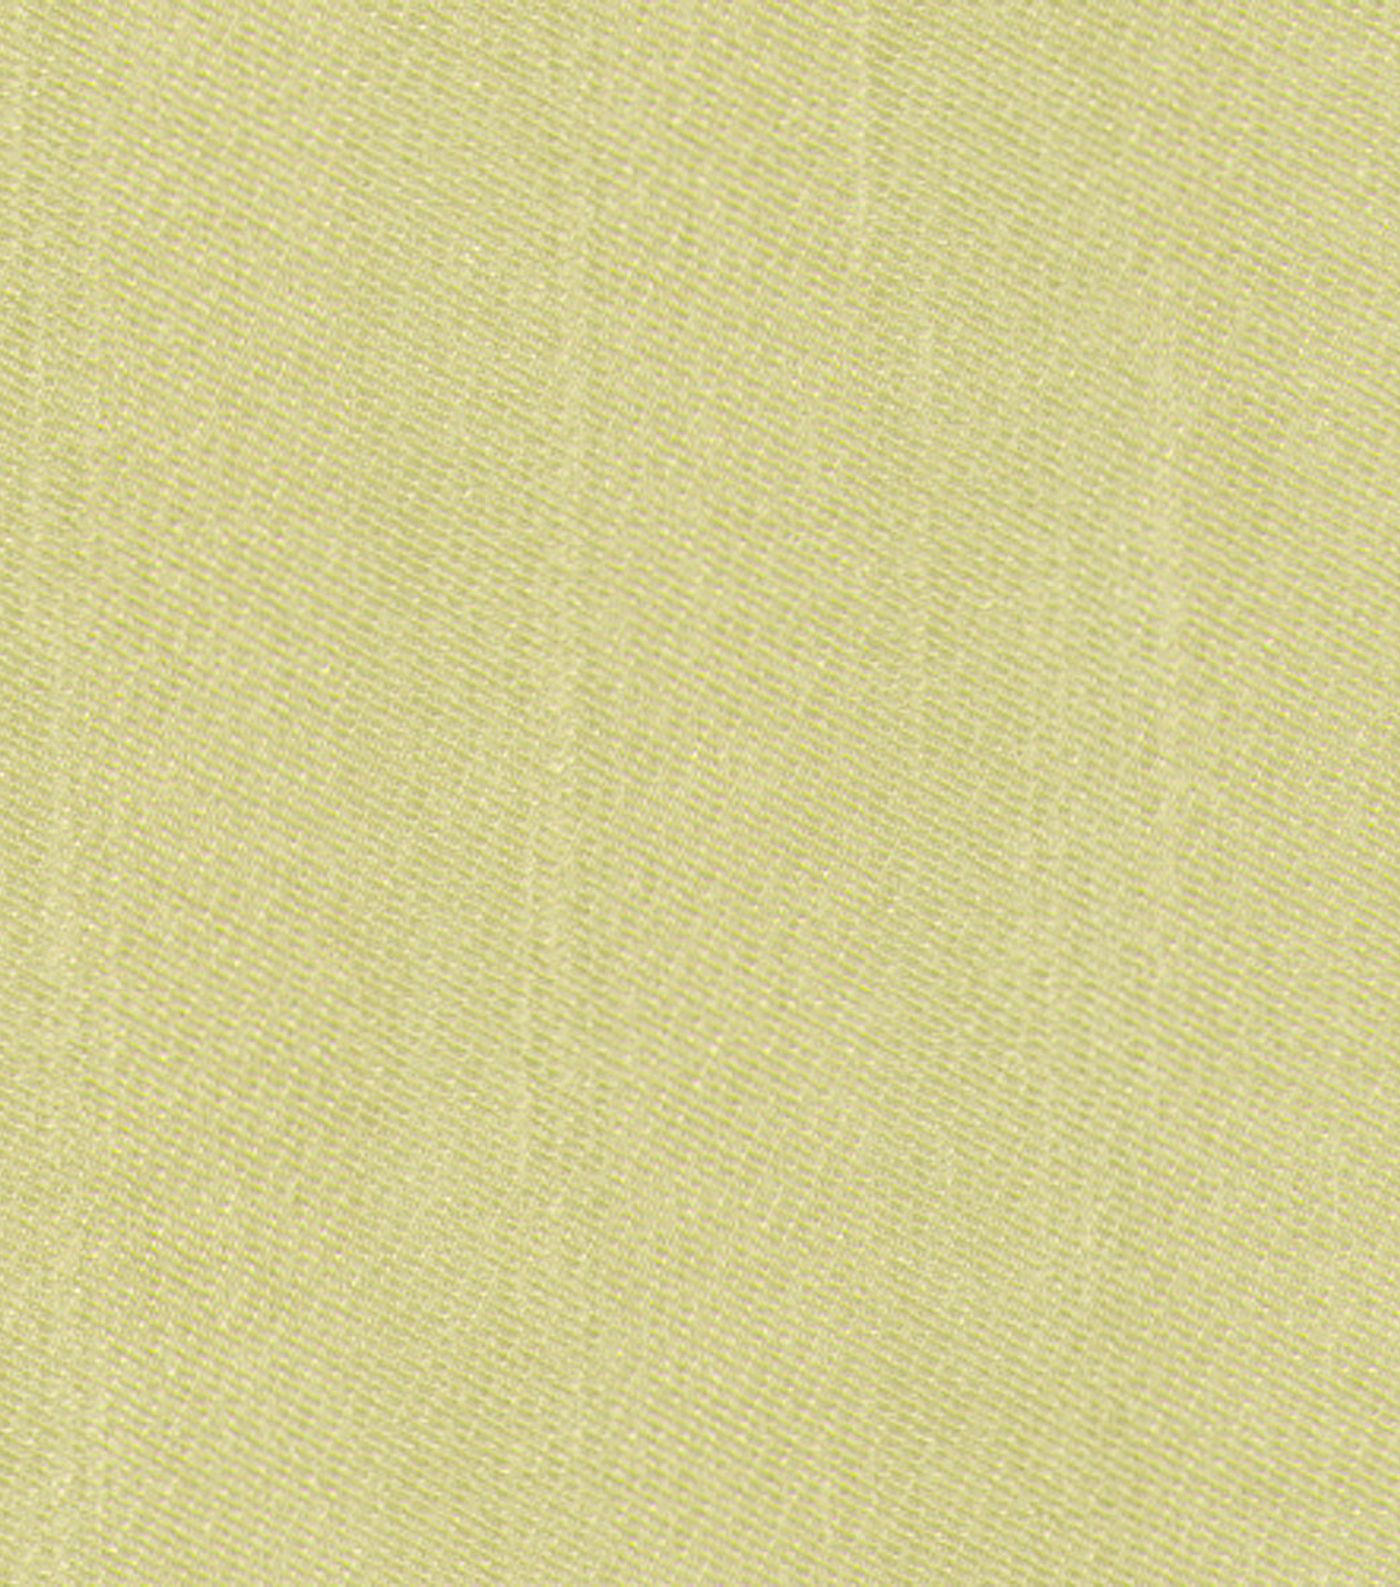 Home Decor 8\u0022x8\u0022 Fabric Swatch-Barrow M7407 5306 Sand